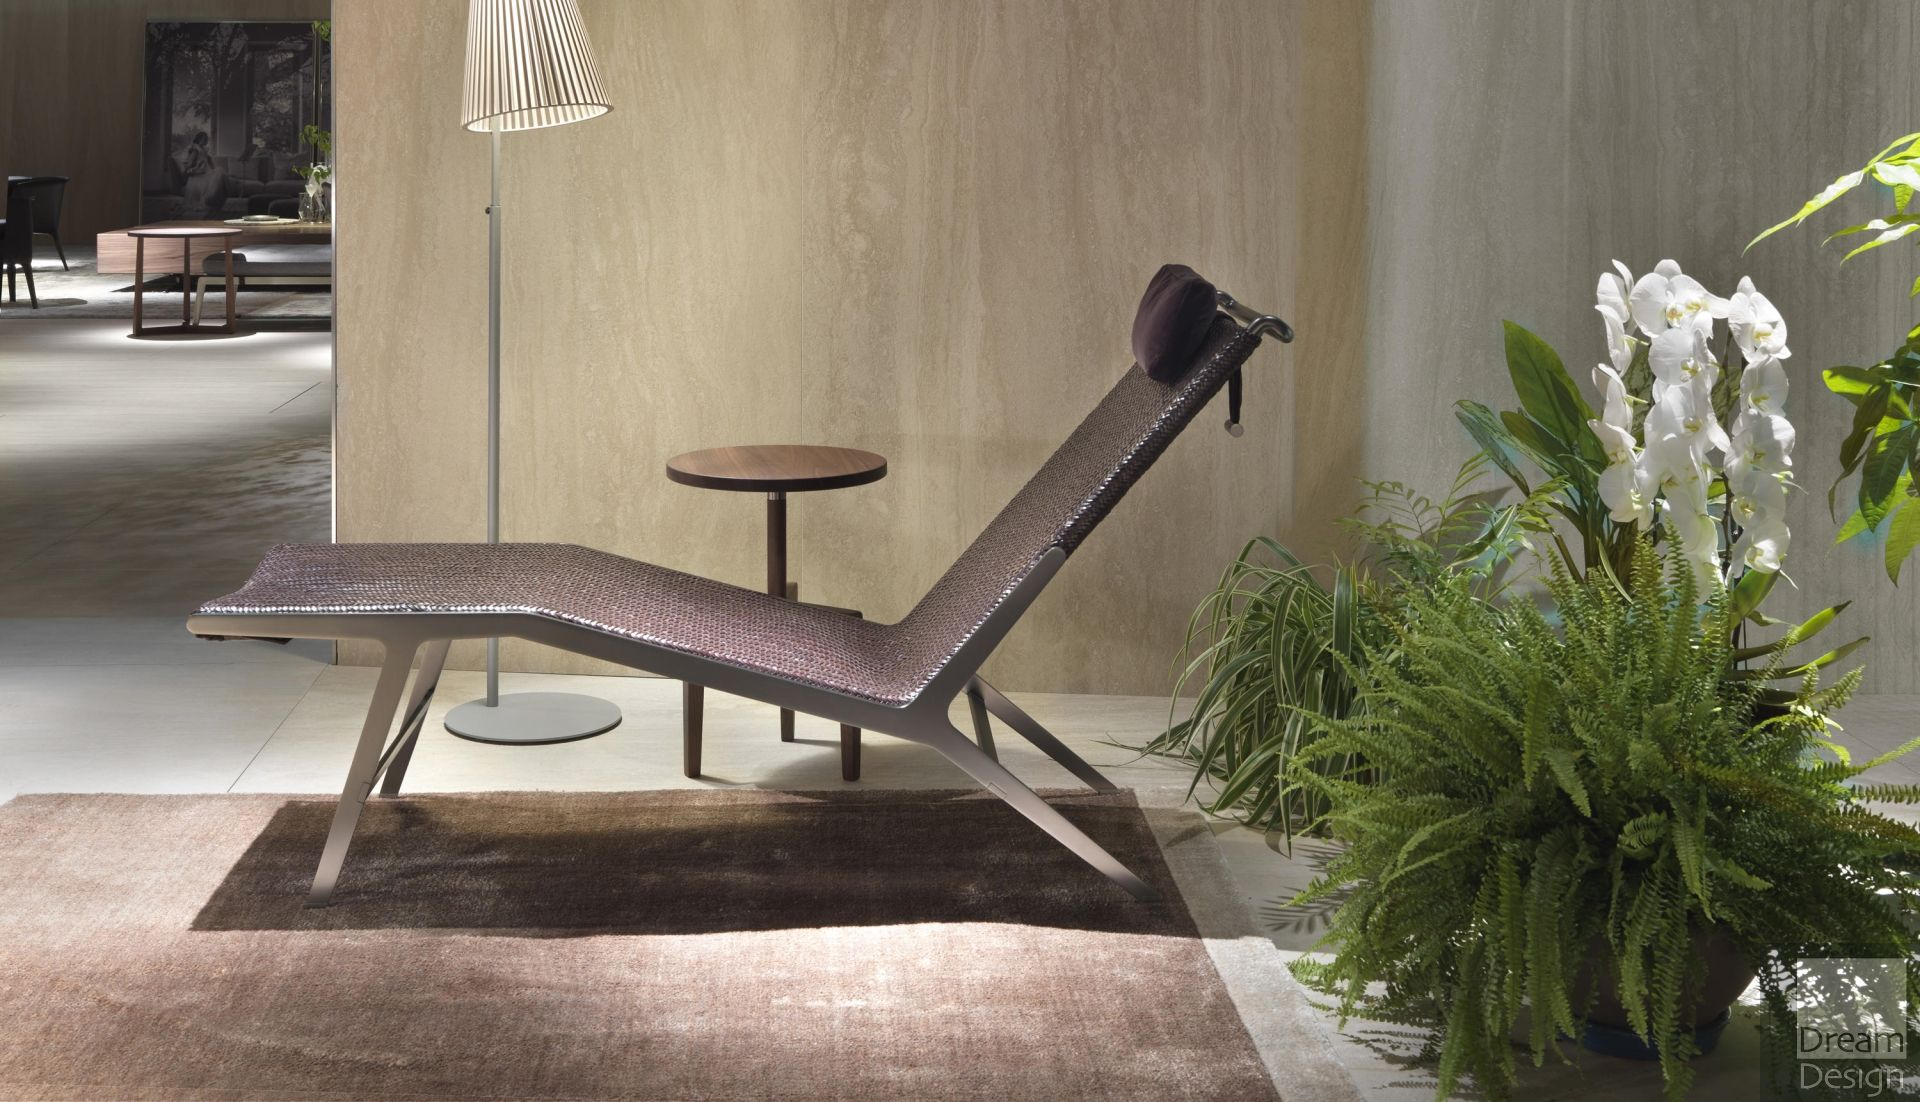 Chaise Longue Suppliers Uk on chaise recliner chair, chaise furniture, chaise sofa sleeper,